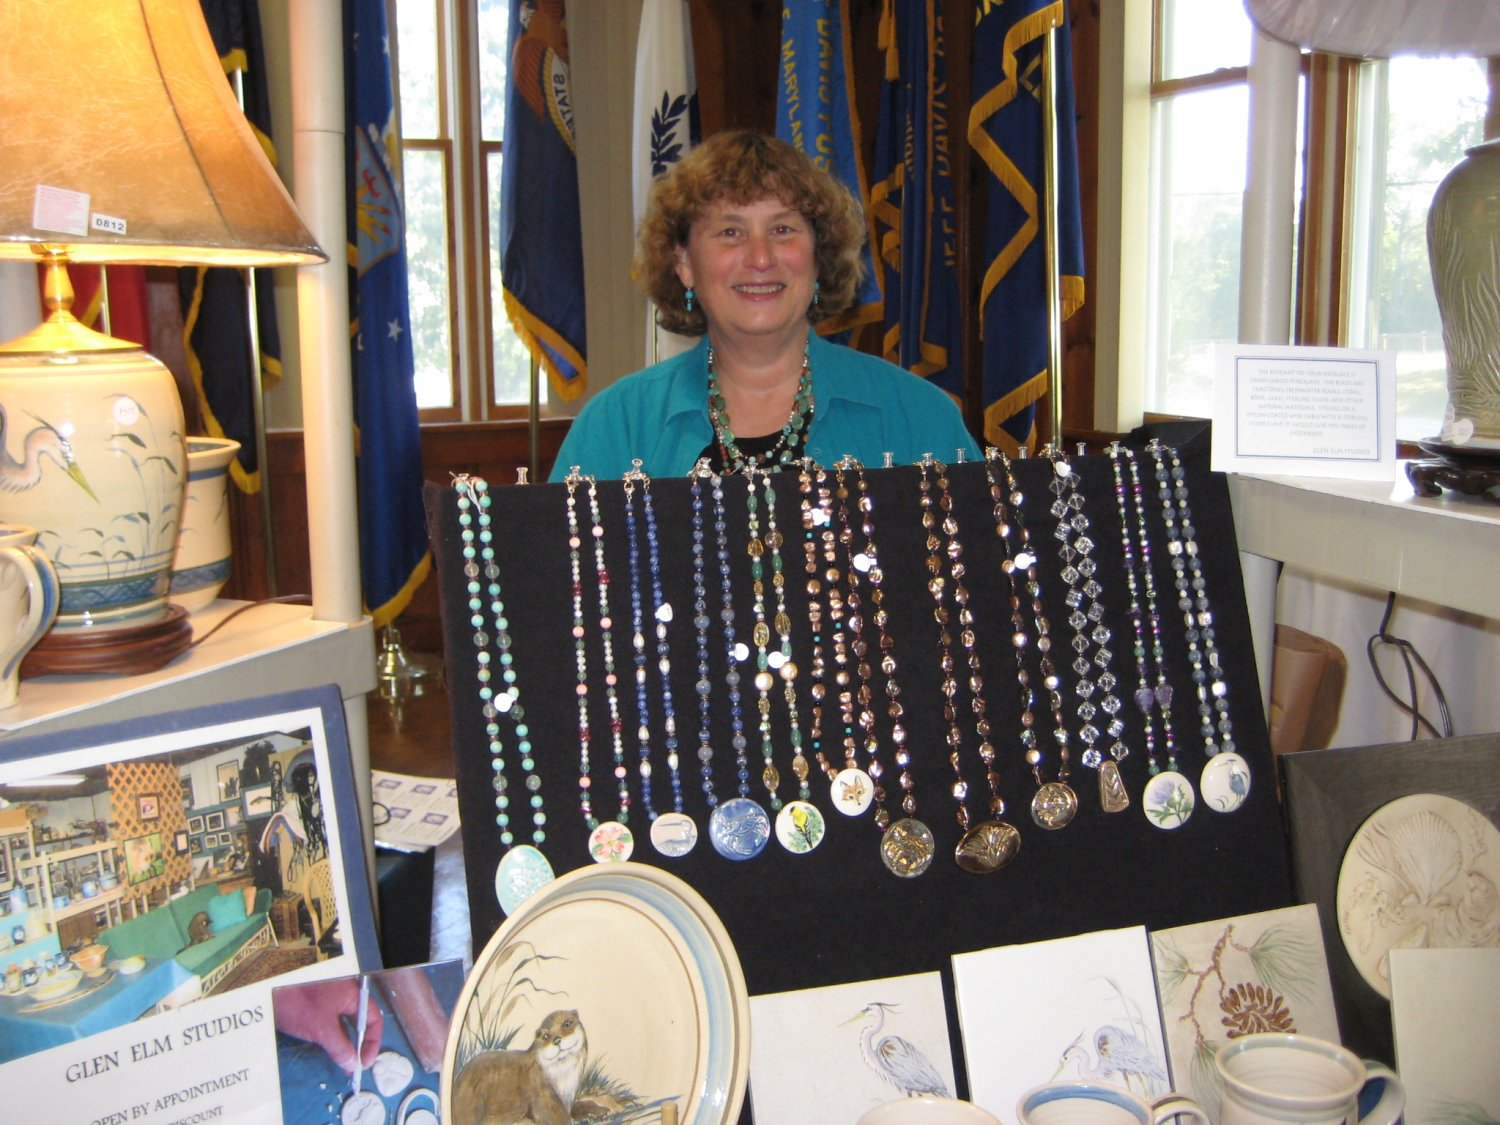 Jean Higgins with her handcrafted pendants.